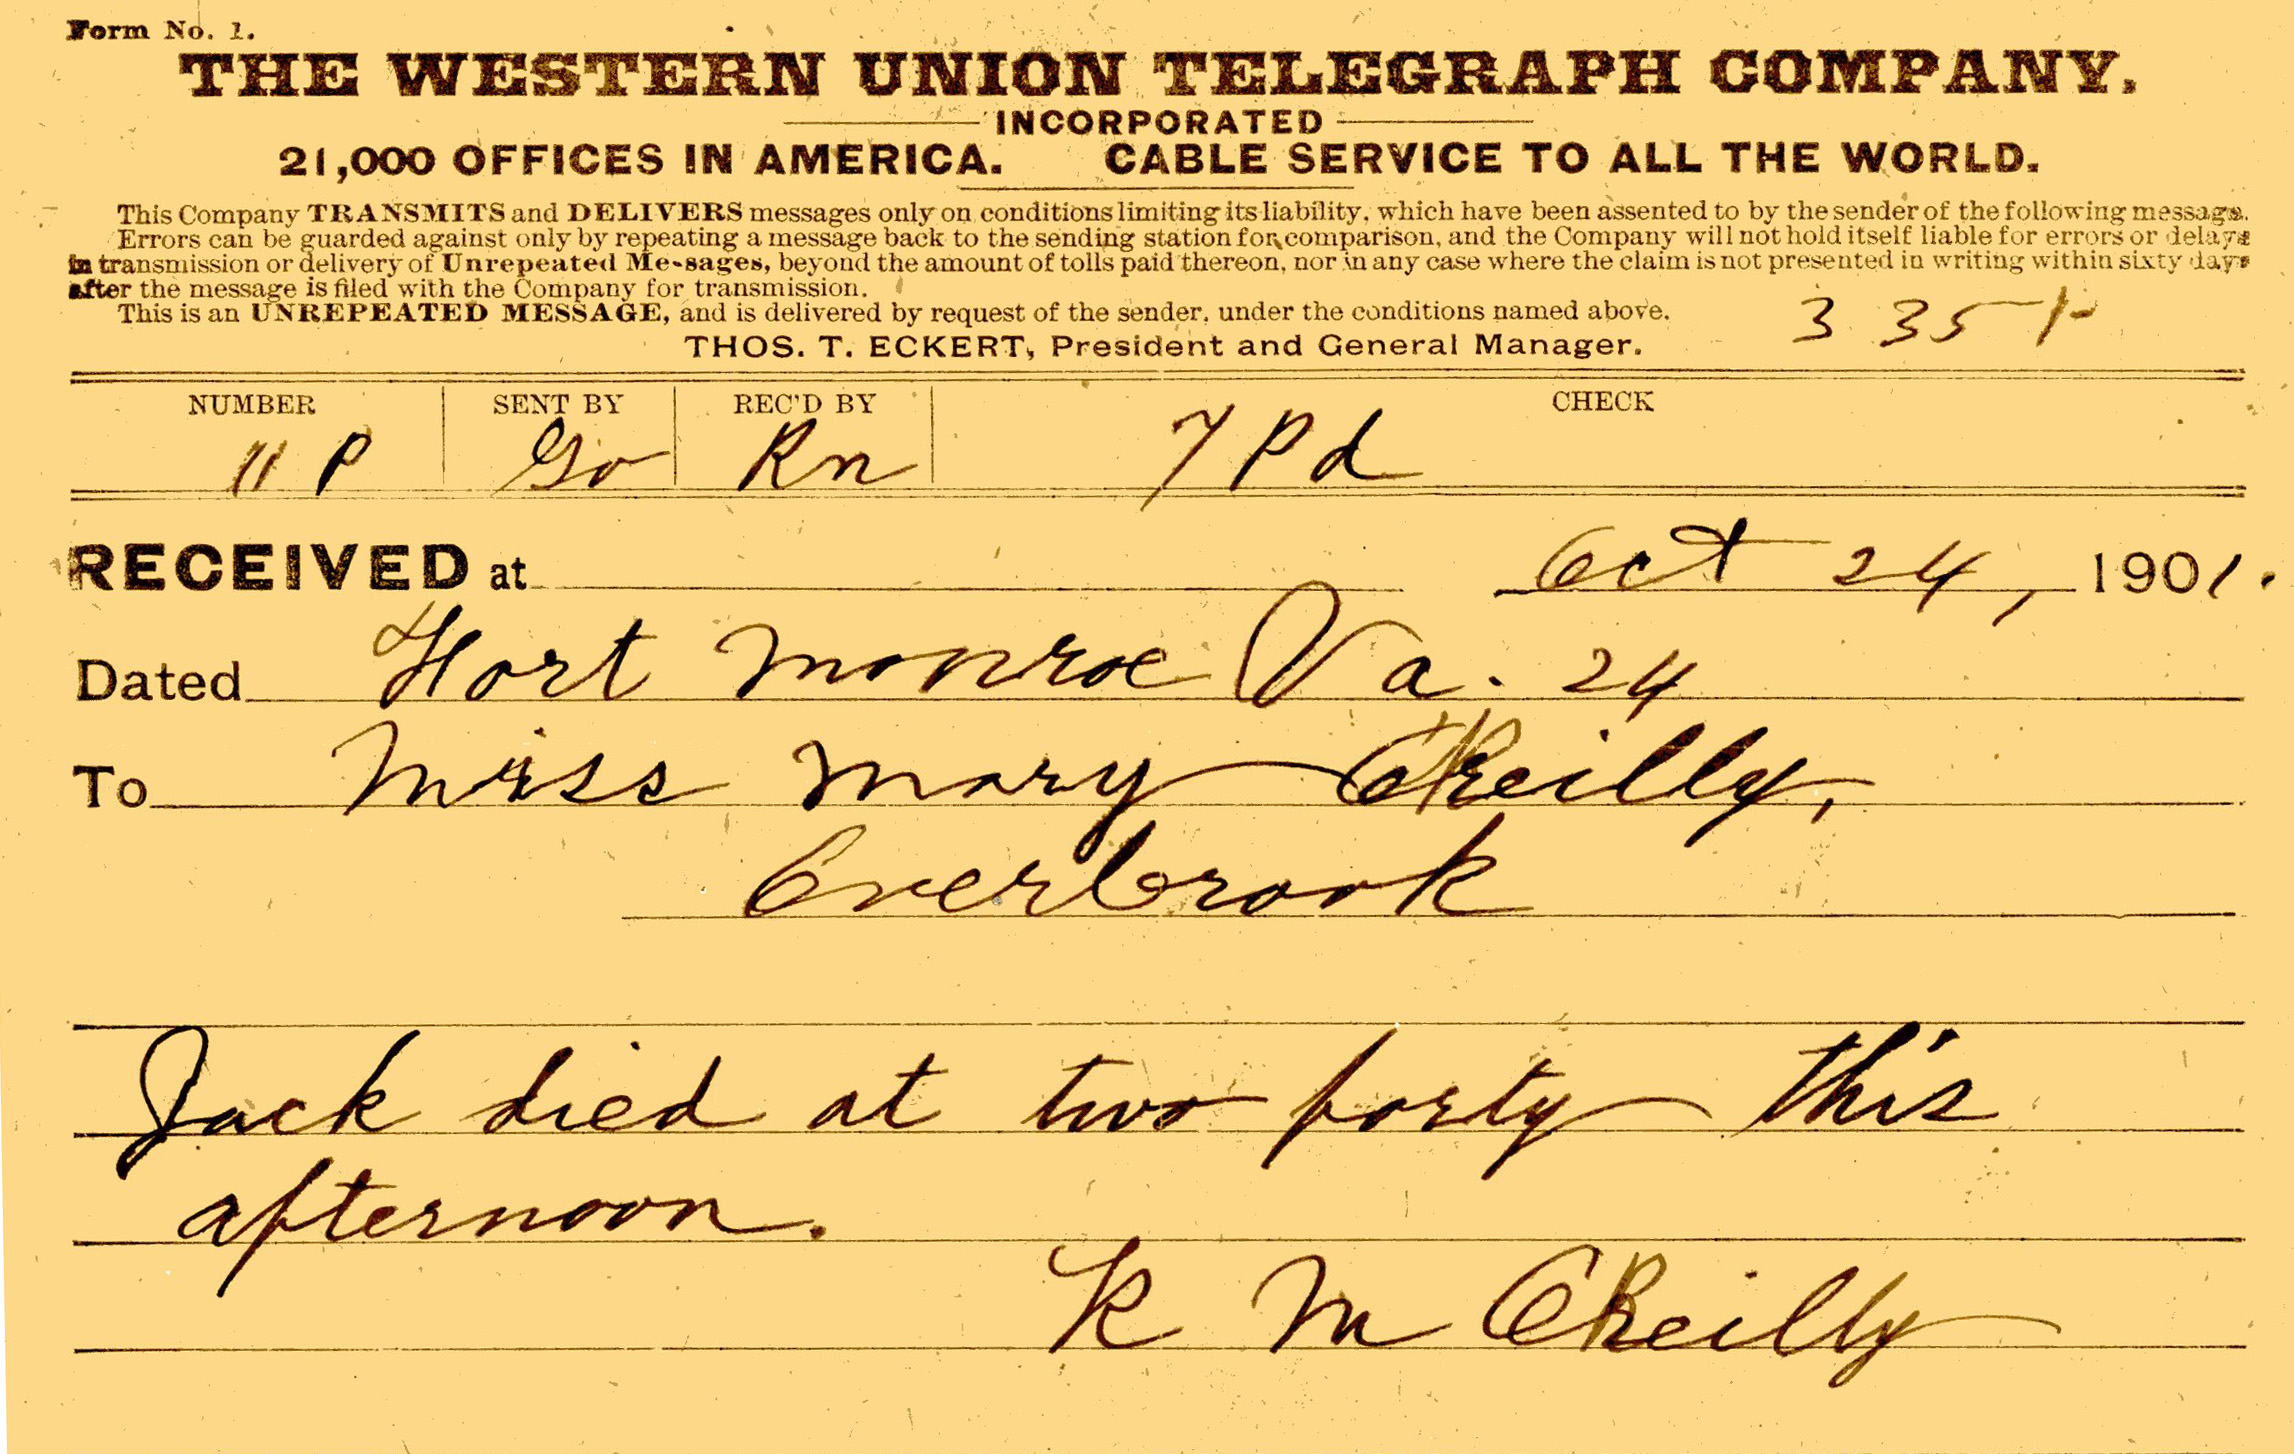 Philadelphia Historical – Center O'reilly From October Mary To M Robert 1901 The Research 24 Telegram Of Catholic O'reilly Archdiocese